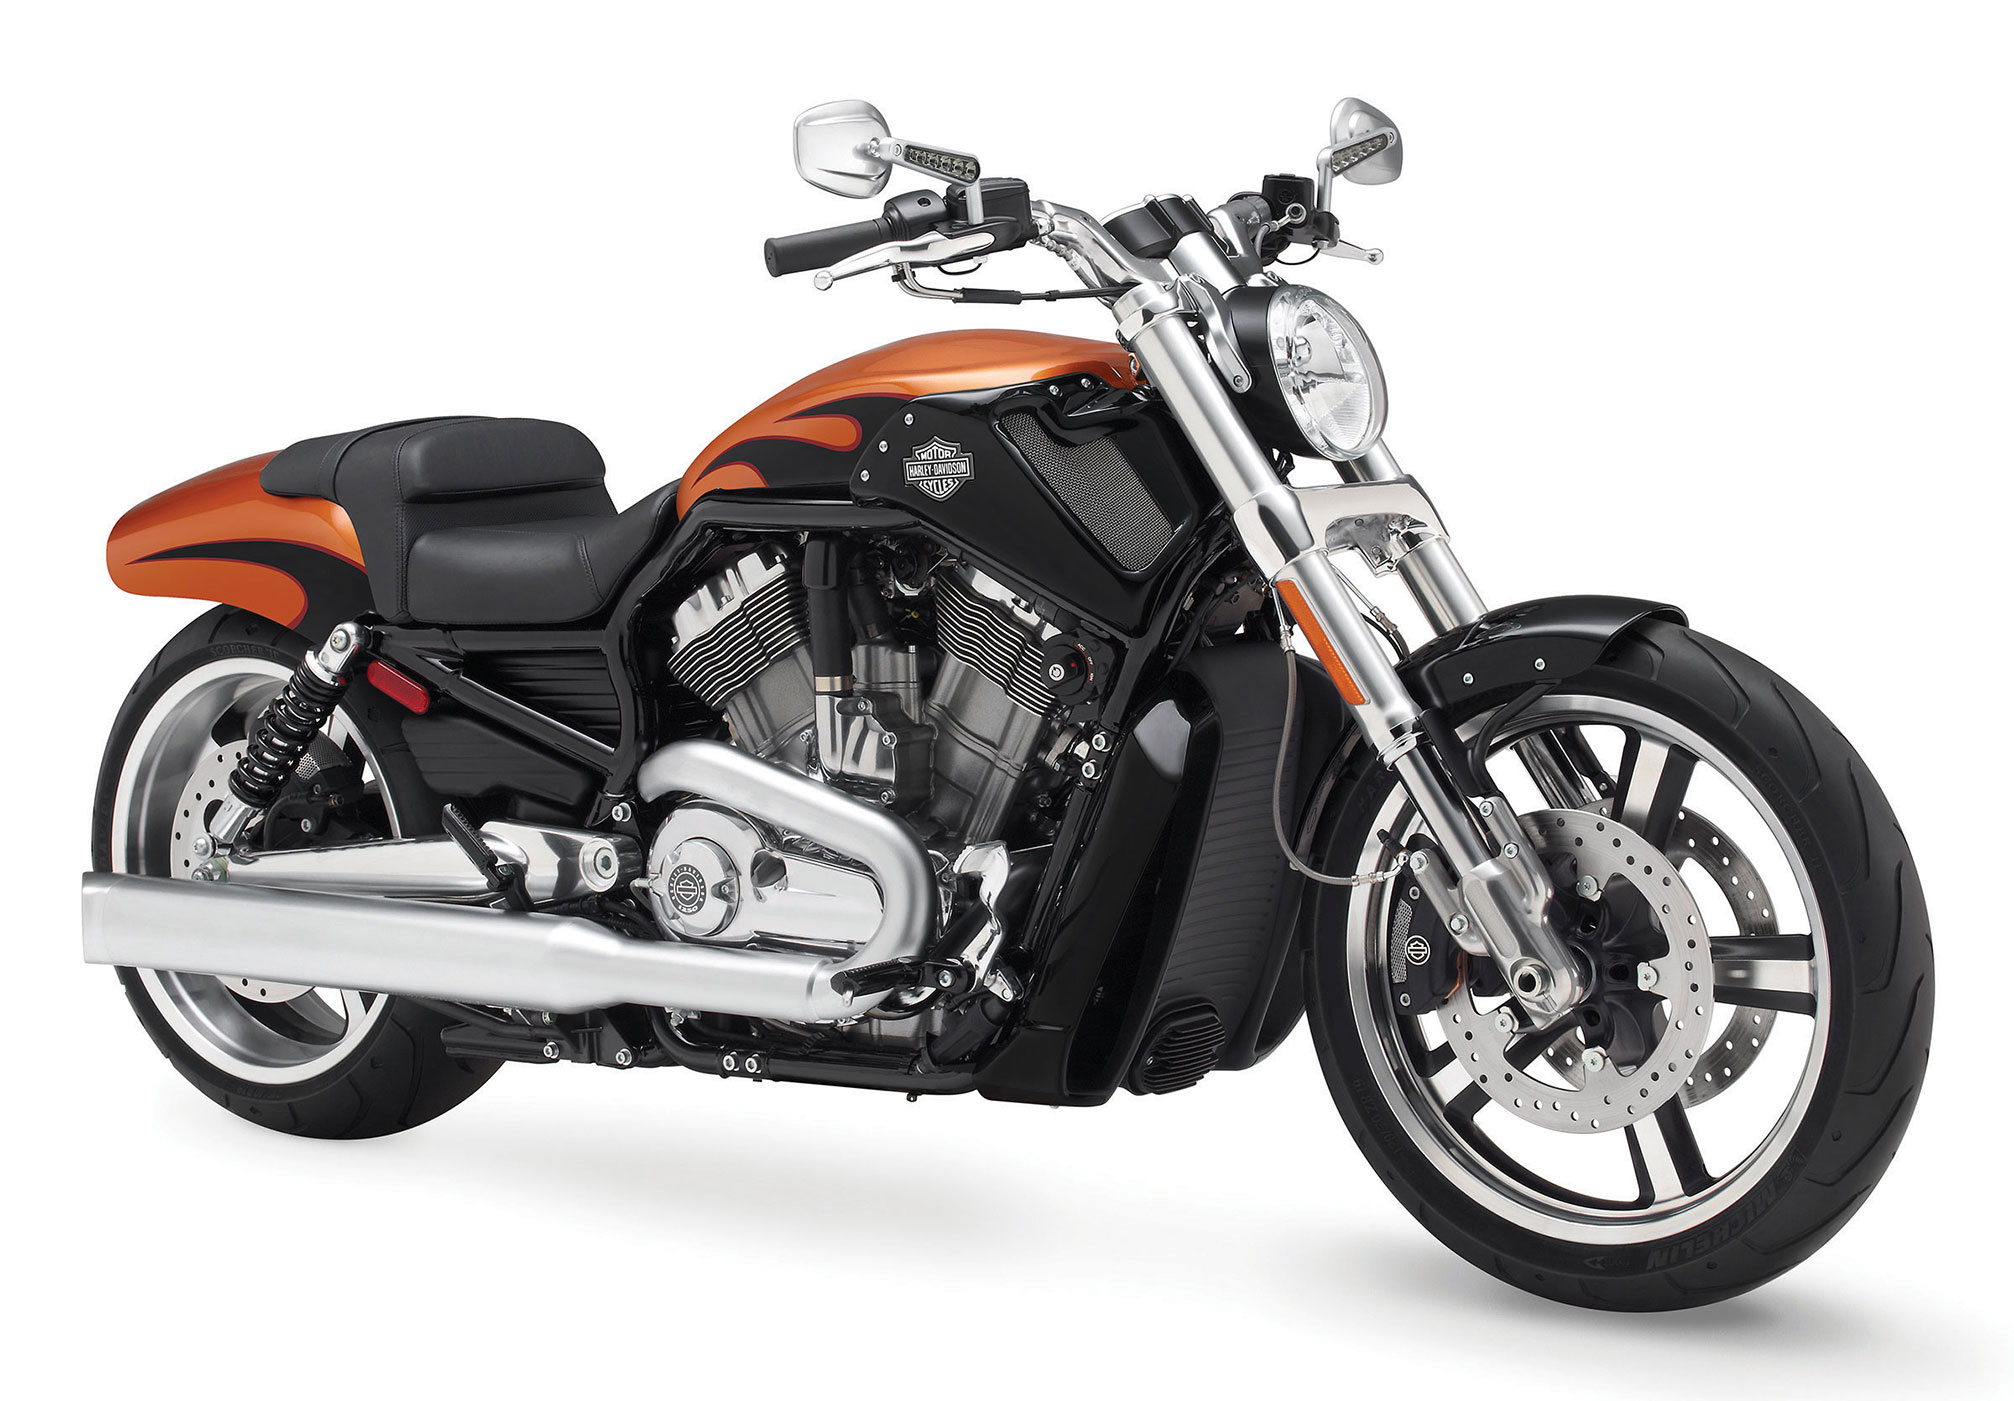 2014 Harley-Davidson VRSCF V-Rod Muscle Review